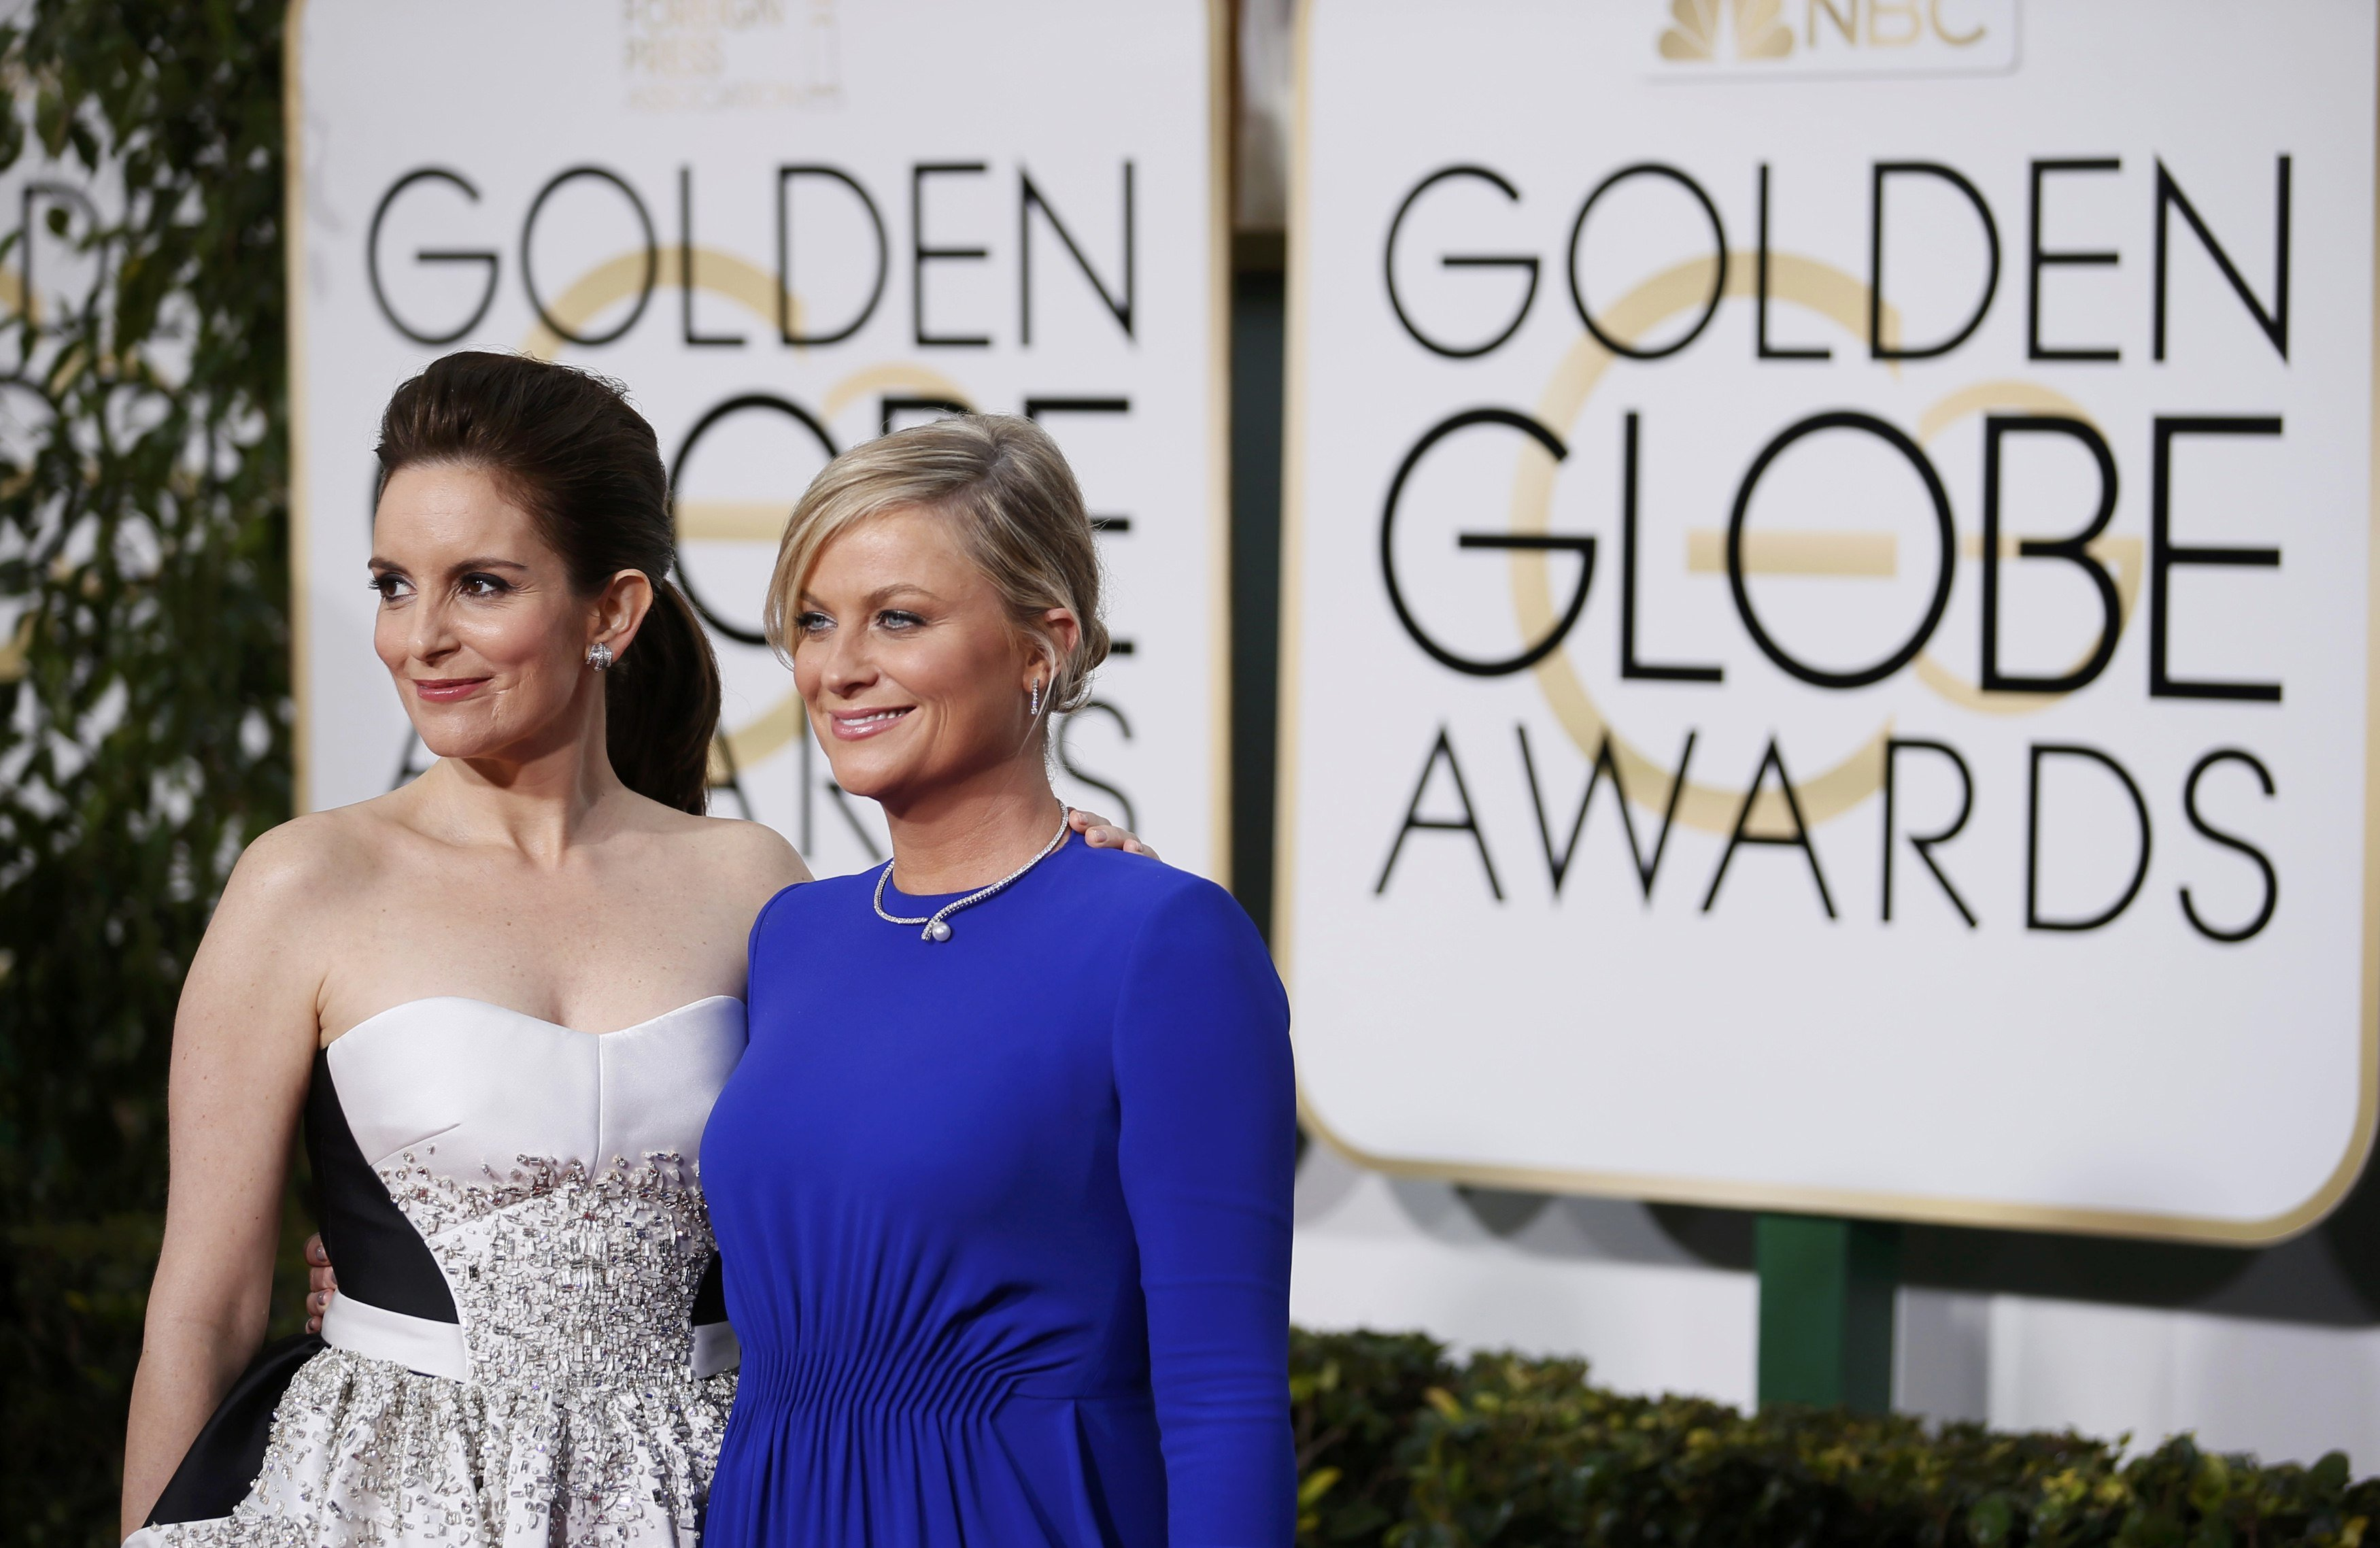 Show hosts Tina Fey and Amy Poehler arrive at the 72nd Golden Globe Awards in Beverly Hills on Jan. 11, 2015.